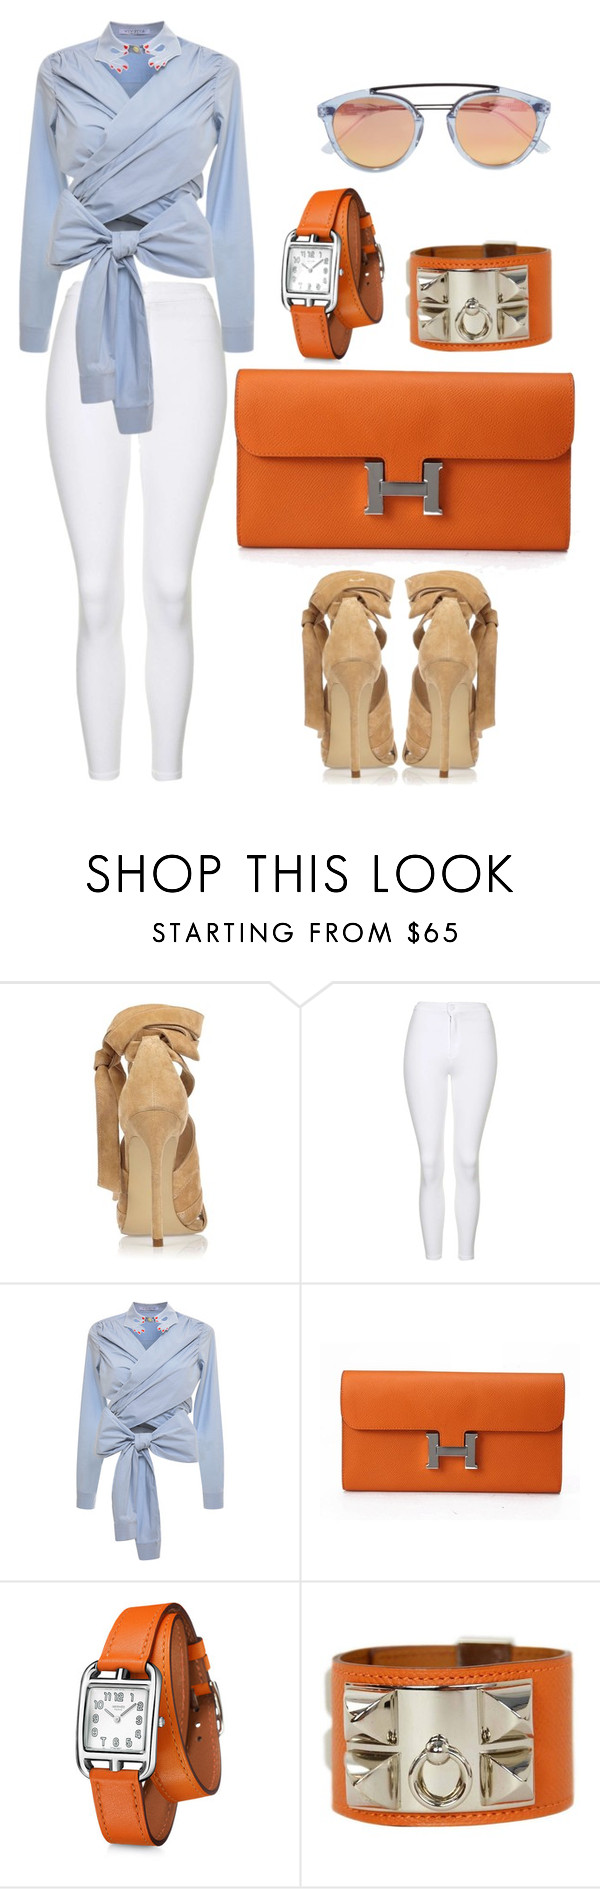 """Untitled #239"" by scannedbyaaron ❤ liked on Polyvore featuring River Island, Topshop, VIVETTA, Hermès and Westward Leaning"